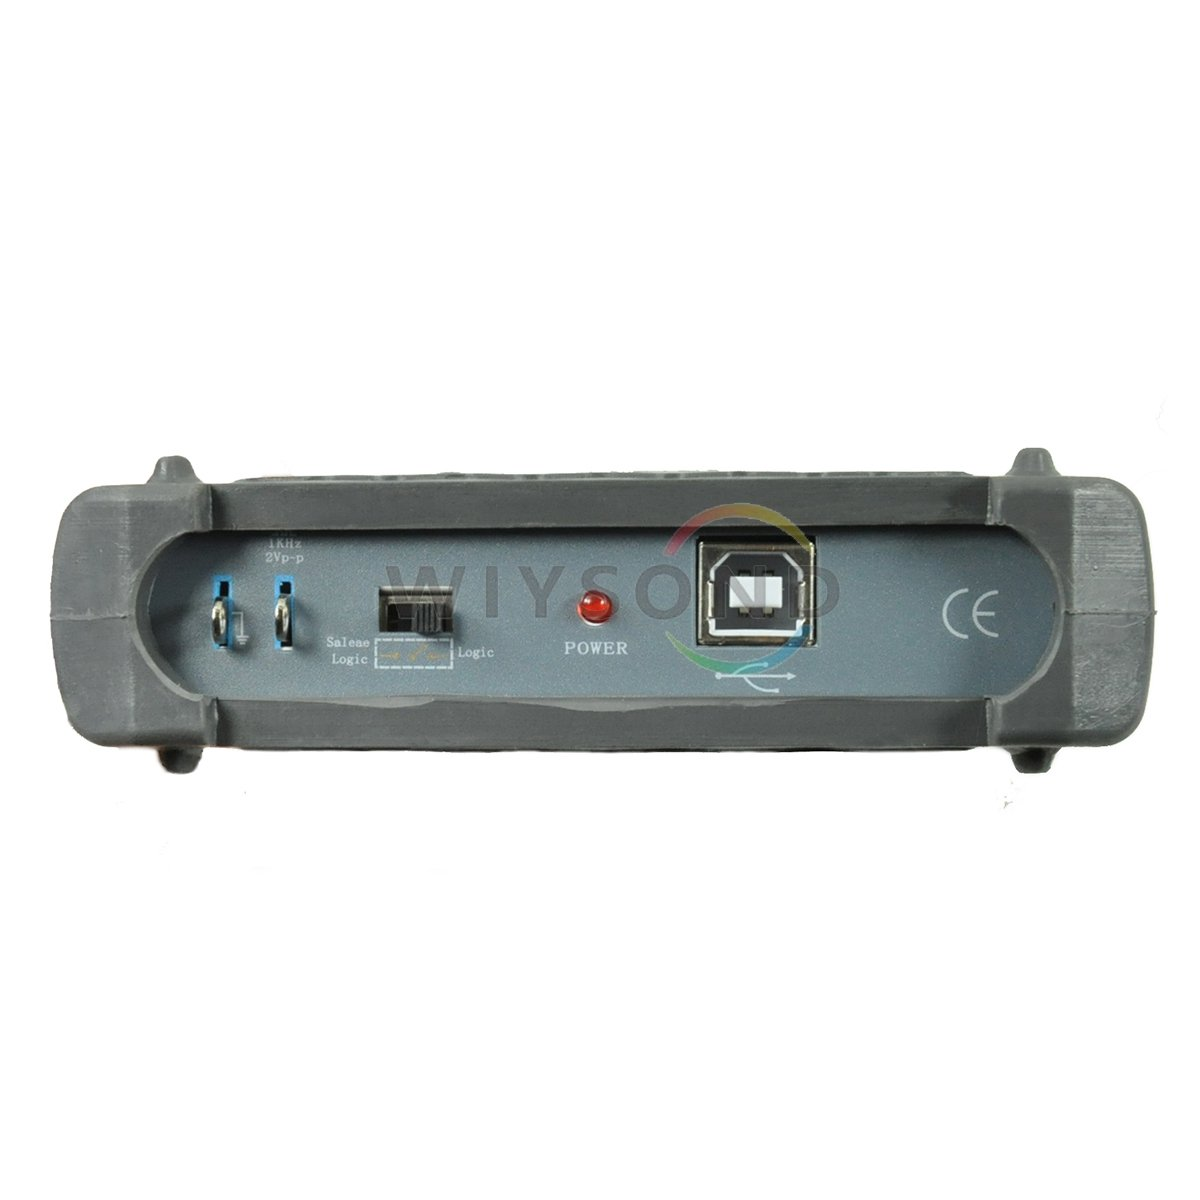 Business & Industrial Test, Measurement & Inspection ISDS205C PC USB